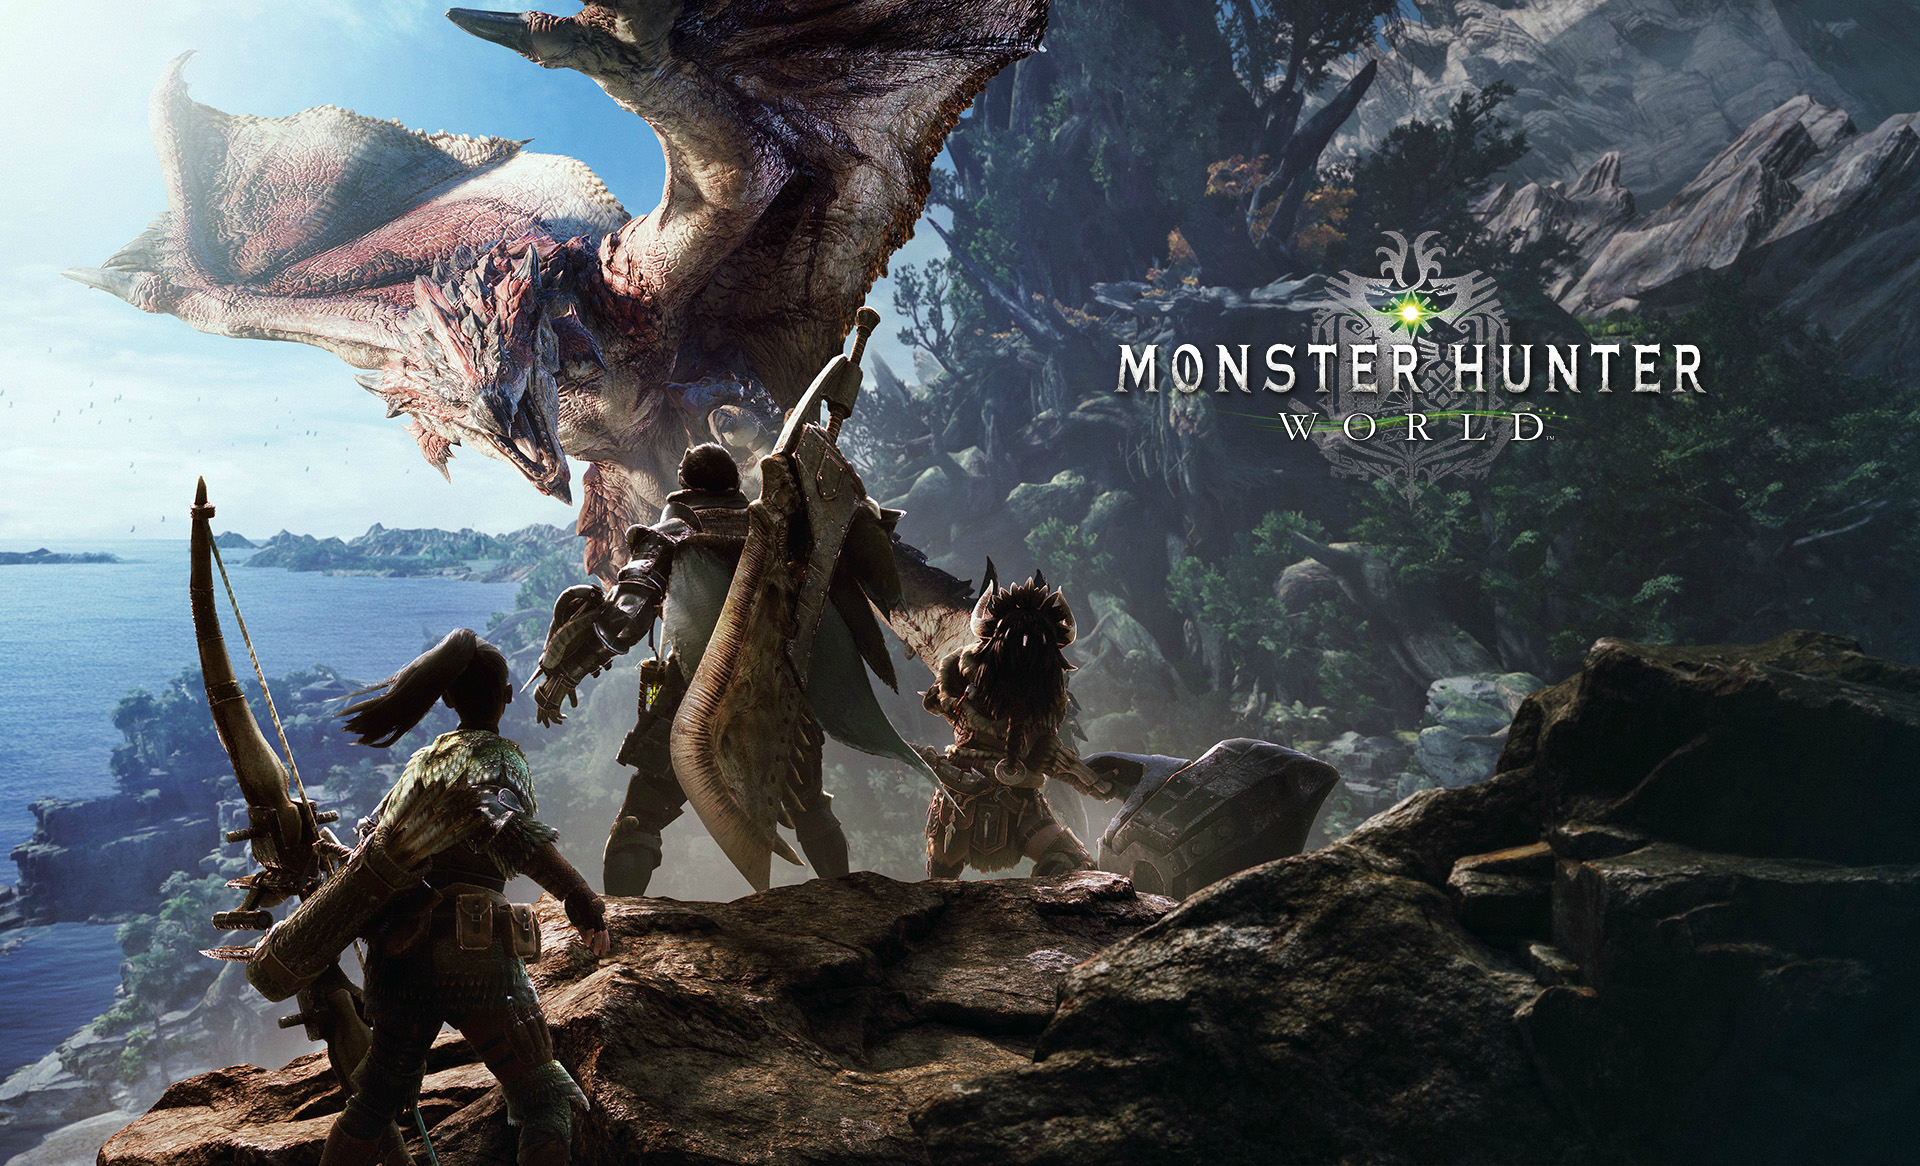 MONSTER HUNTER: WORLD bg